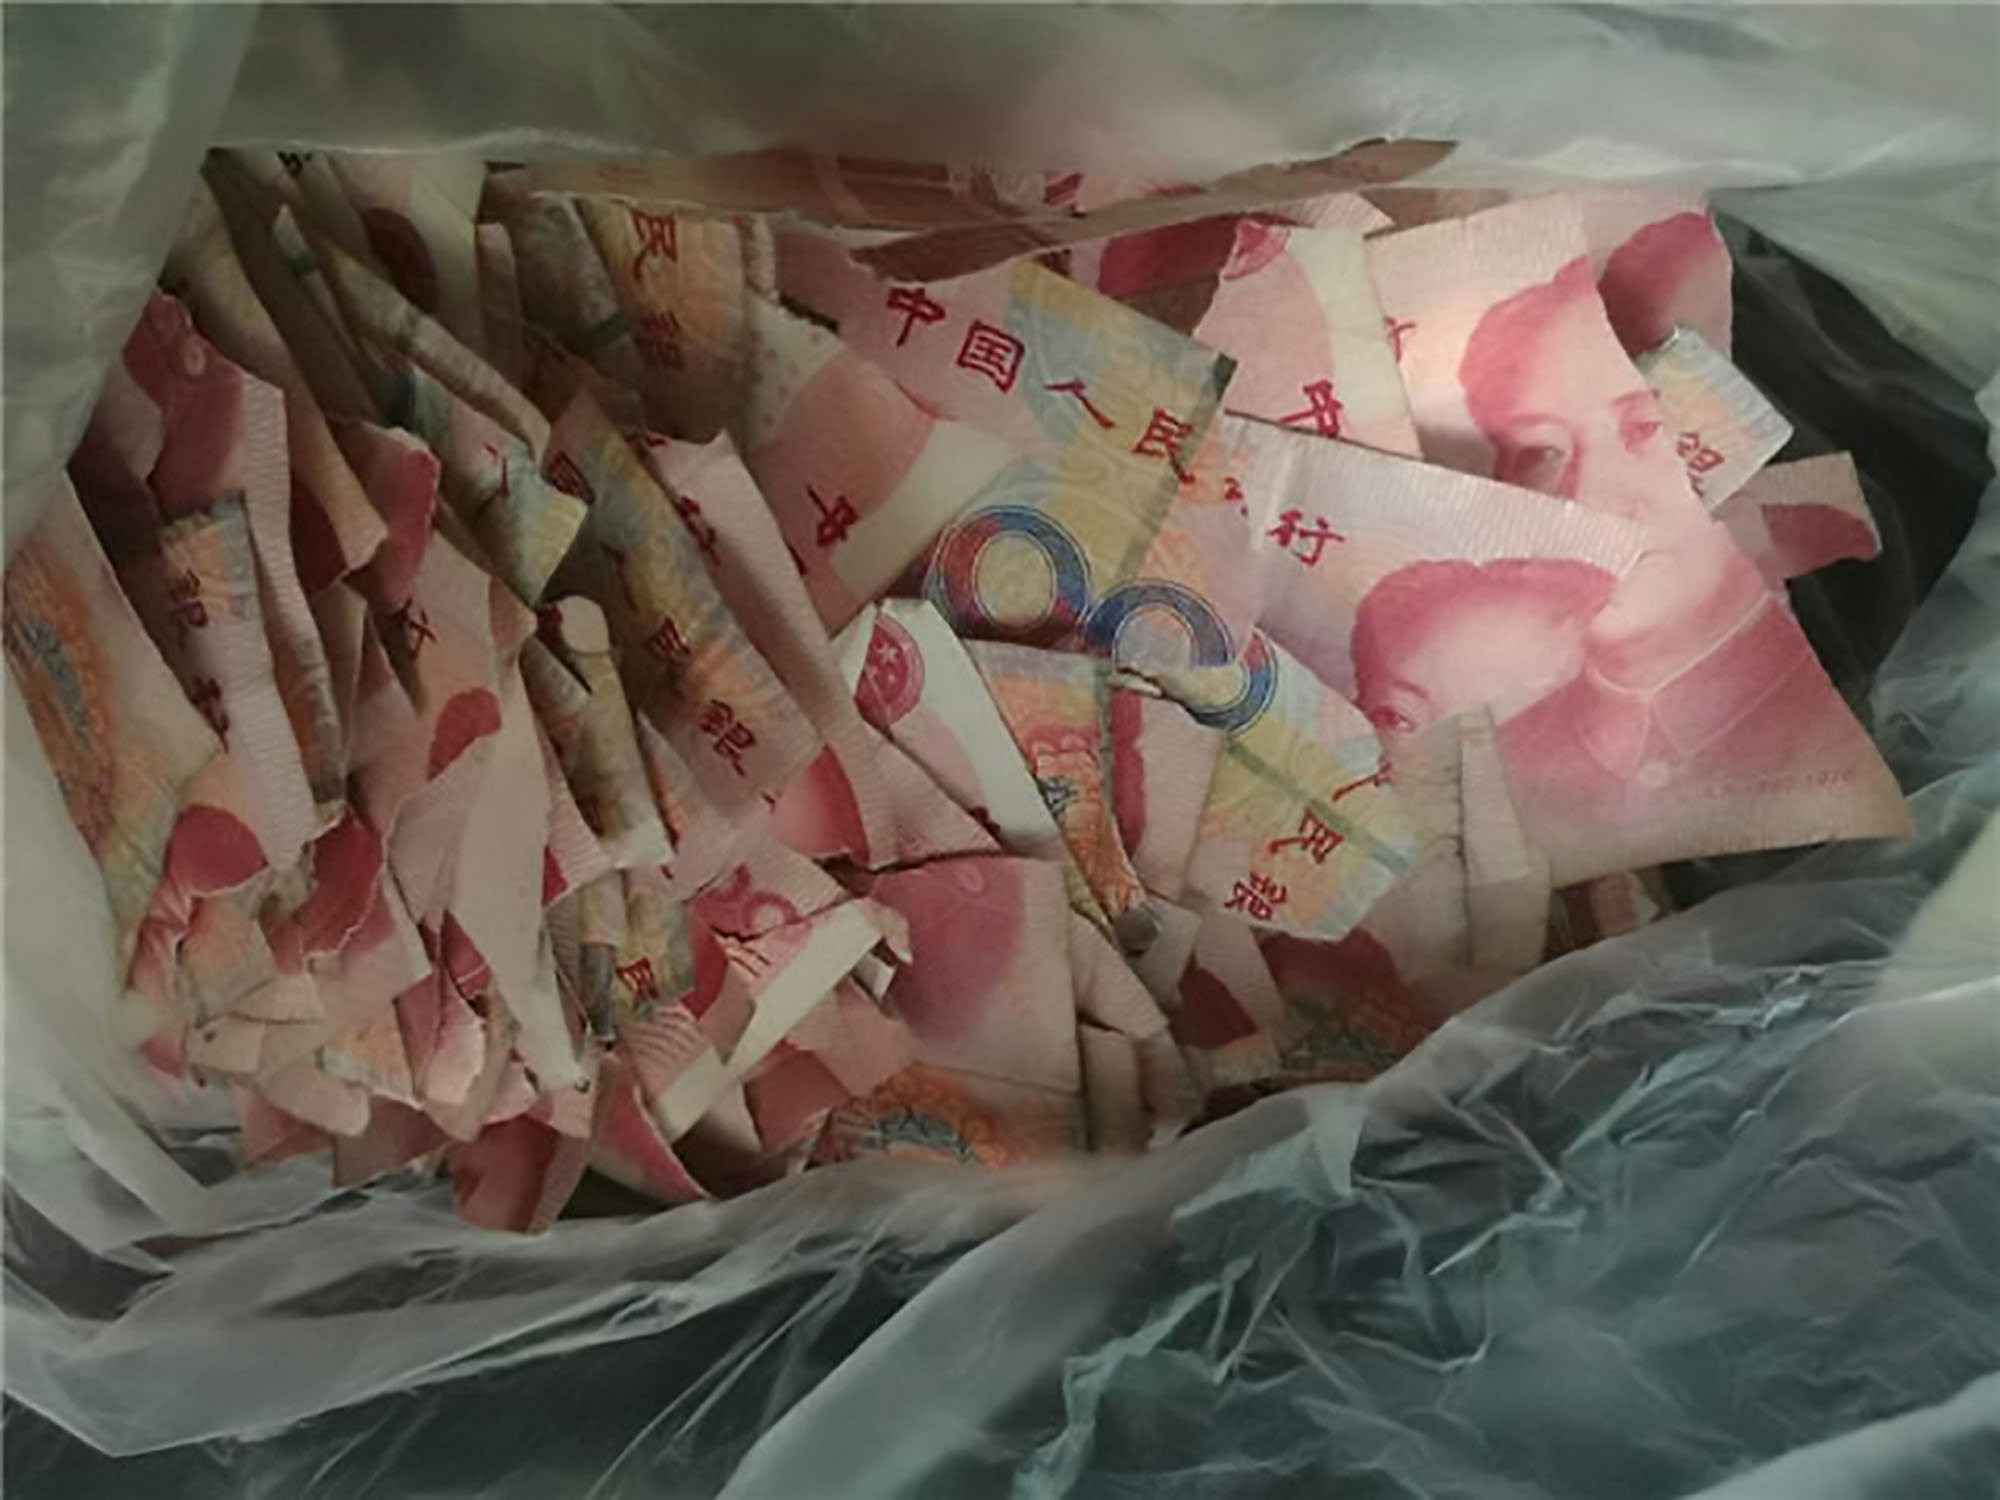 Father can't cash in £5,000 in ripped banknotes after son tore them to pieces